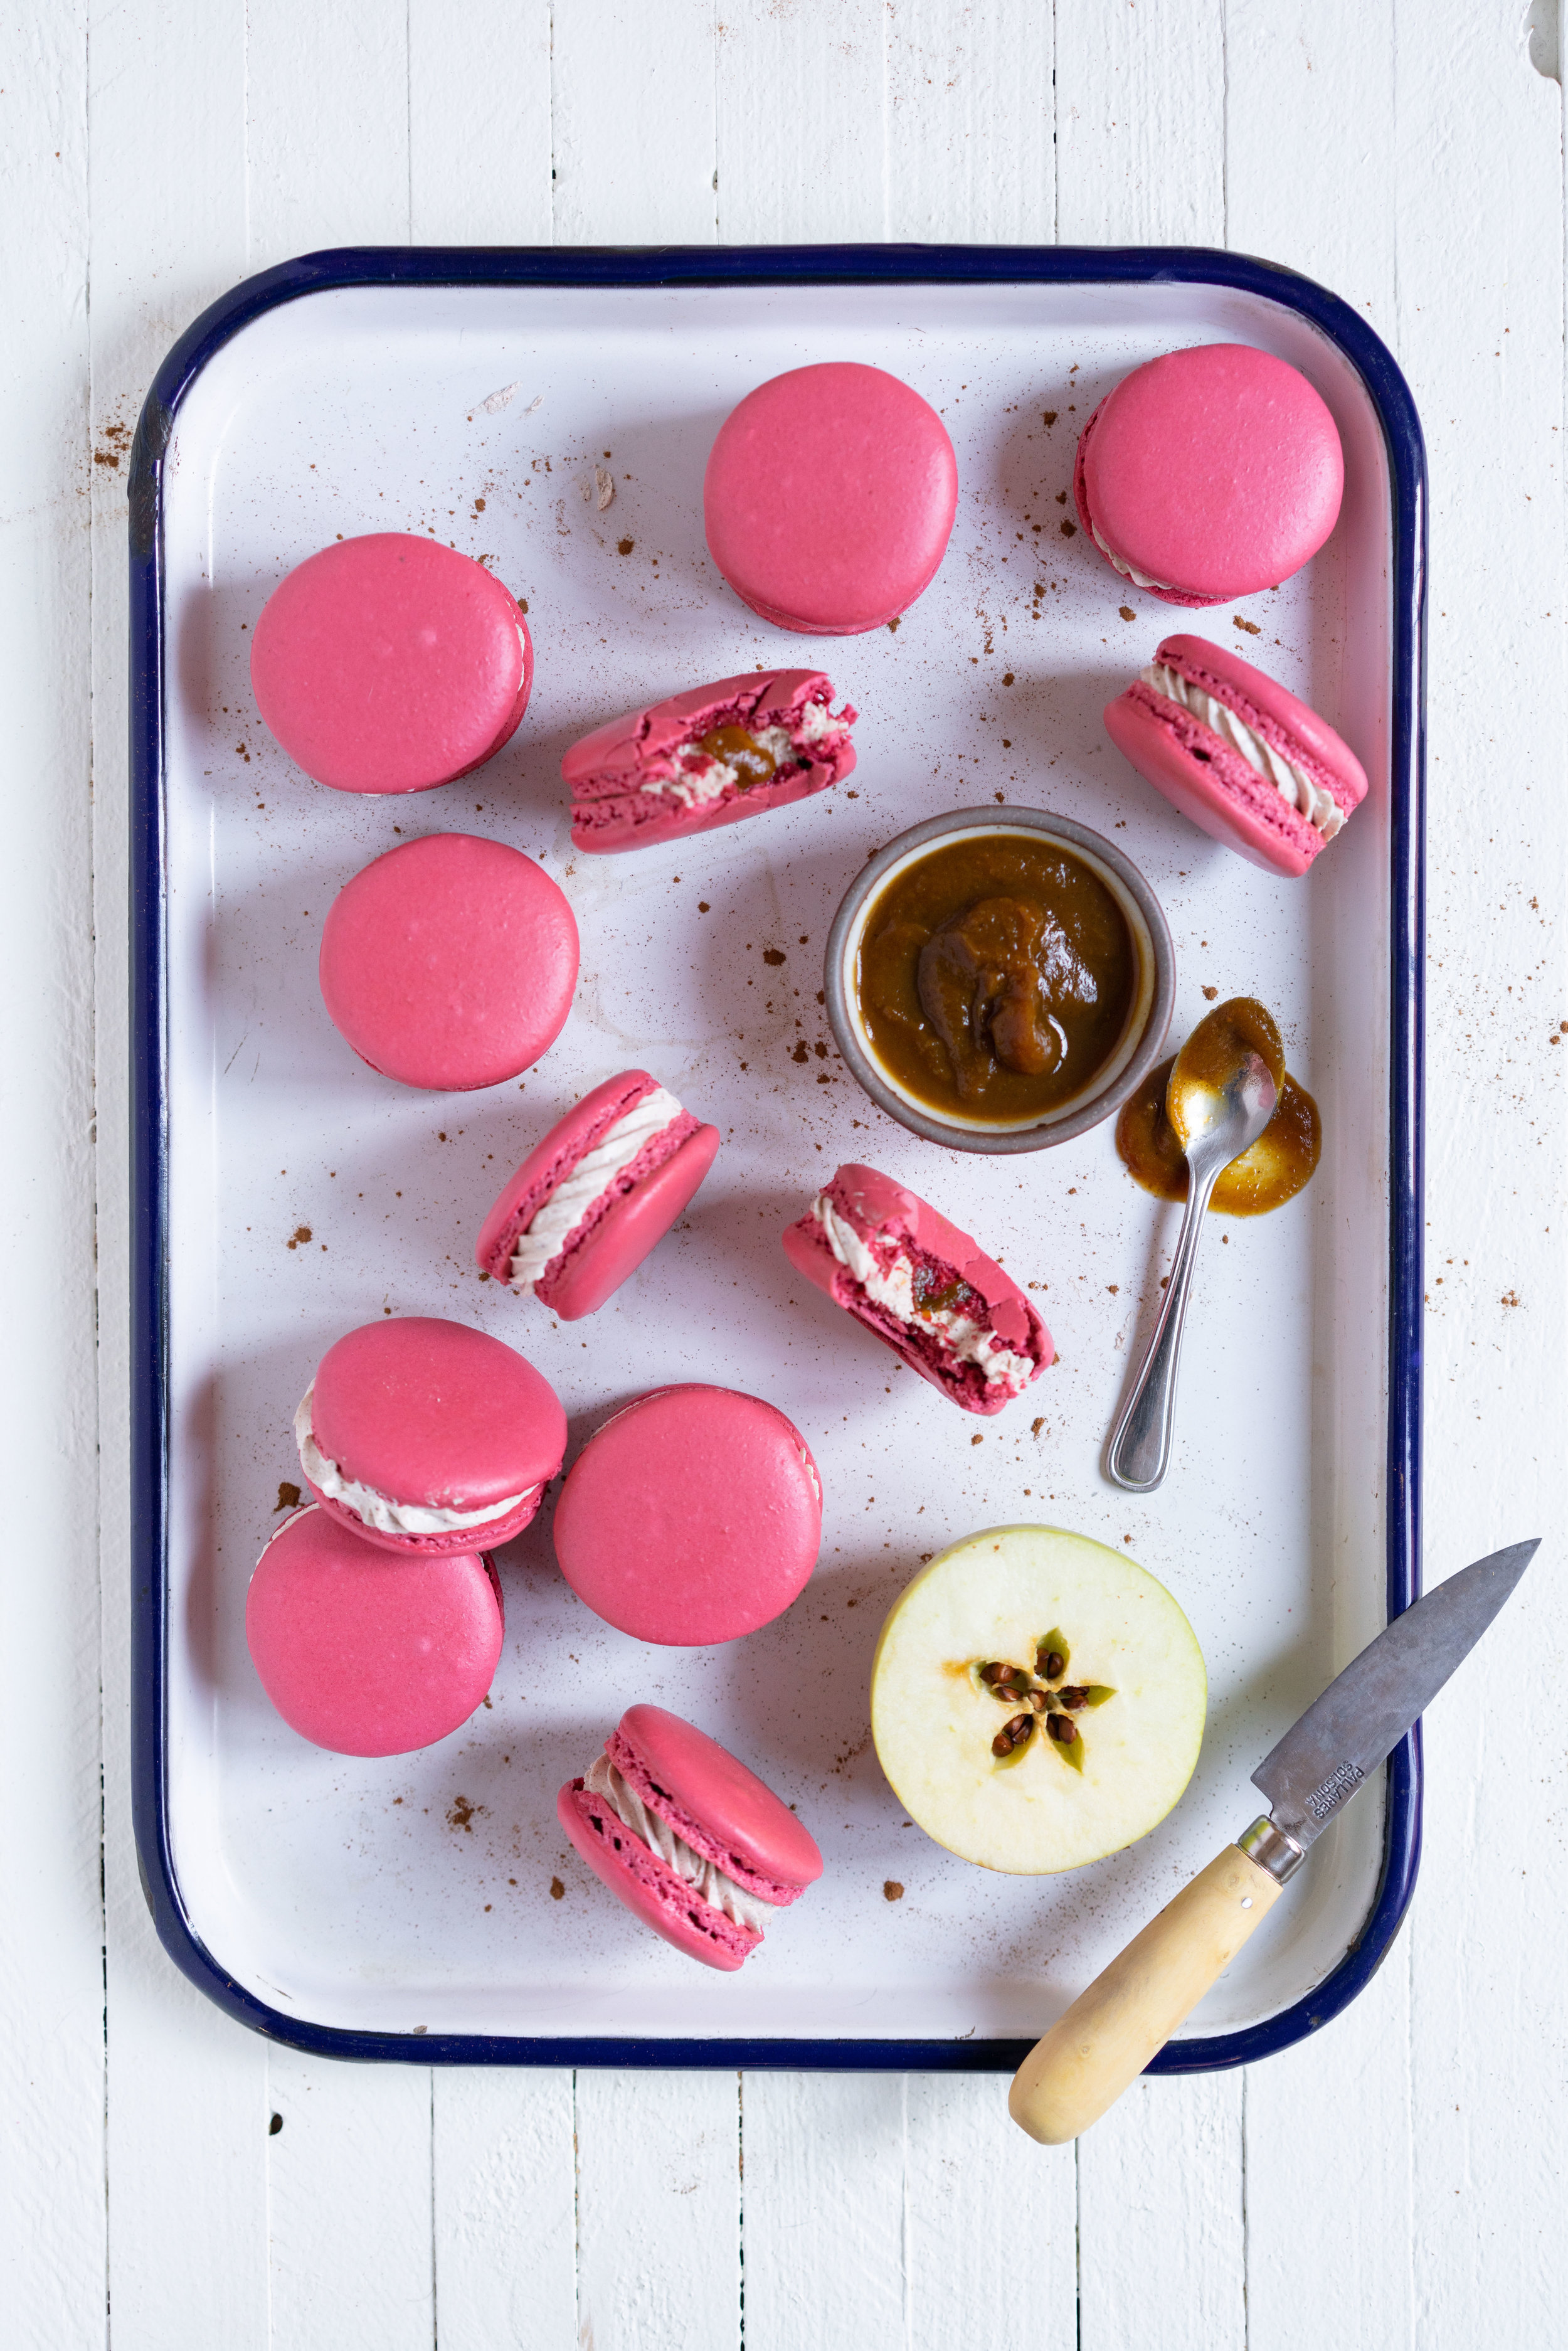 The perfect Fall French Macaron - Macaron shells are filled with a smooth apple butter and spiced swiss meringue buttercream. #frenchmacaron #applemacaron